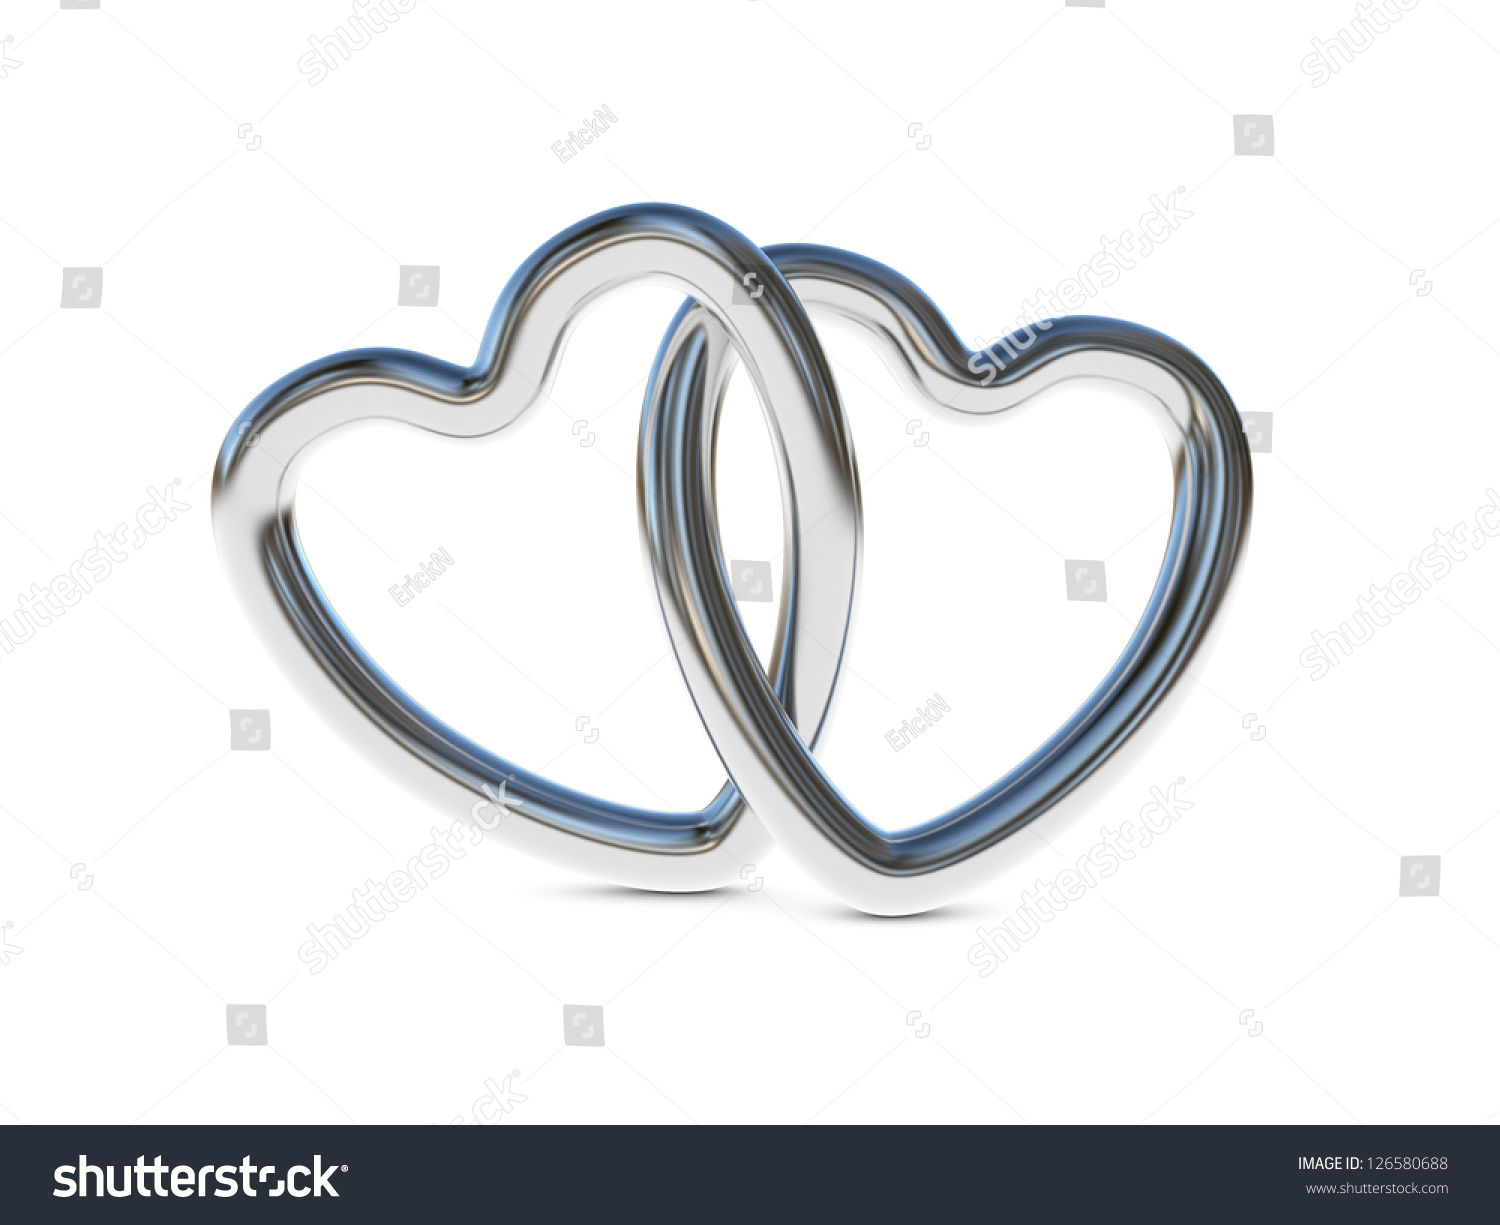 Two Intertwined Silver Heart Rings 3d Stock Illustration ...